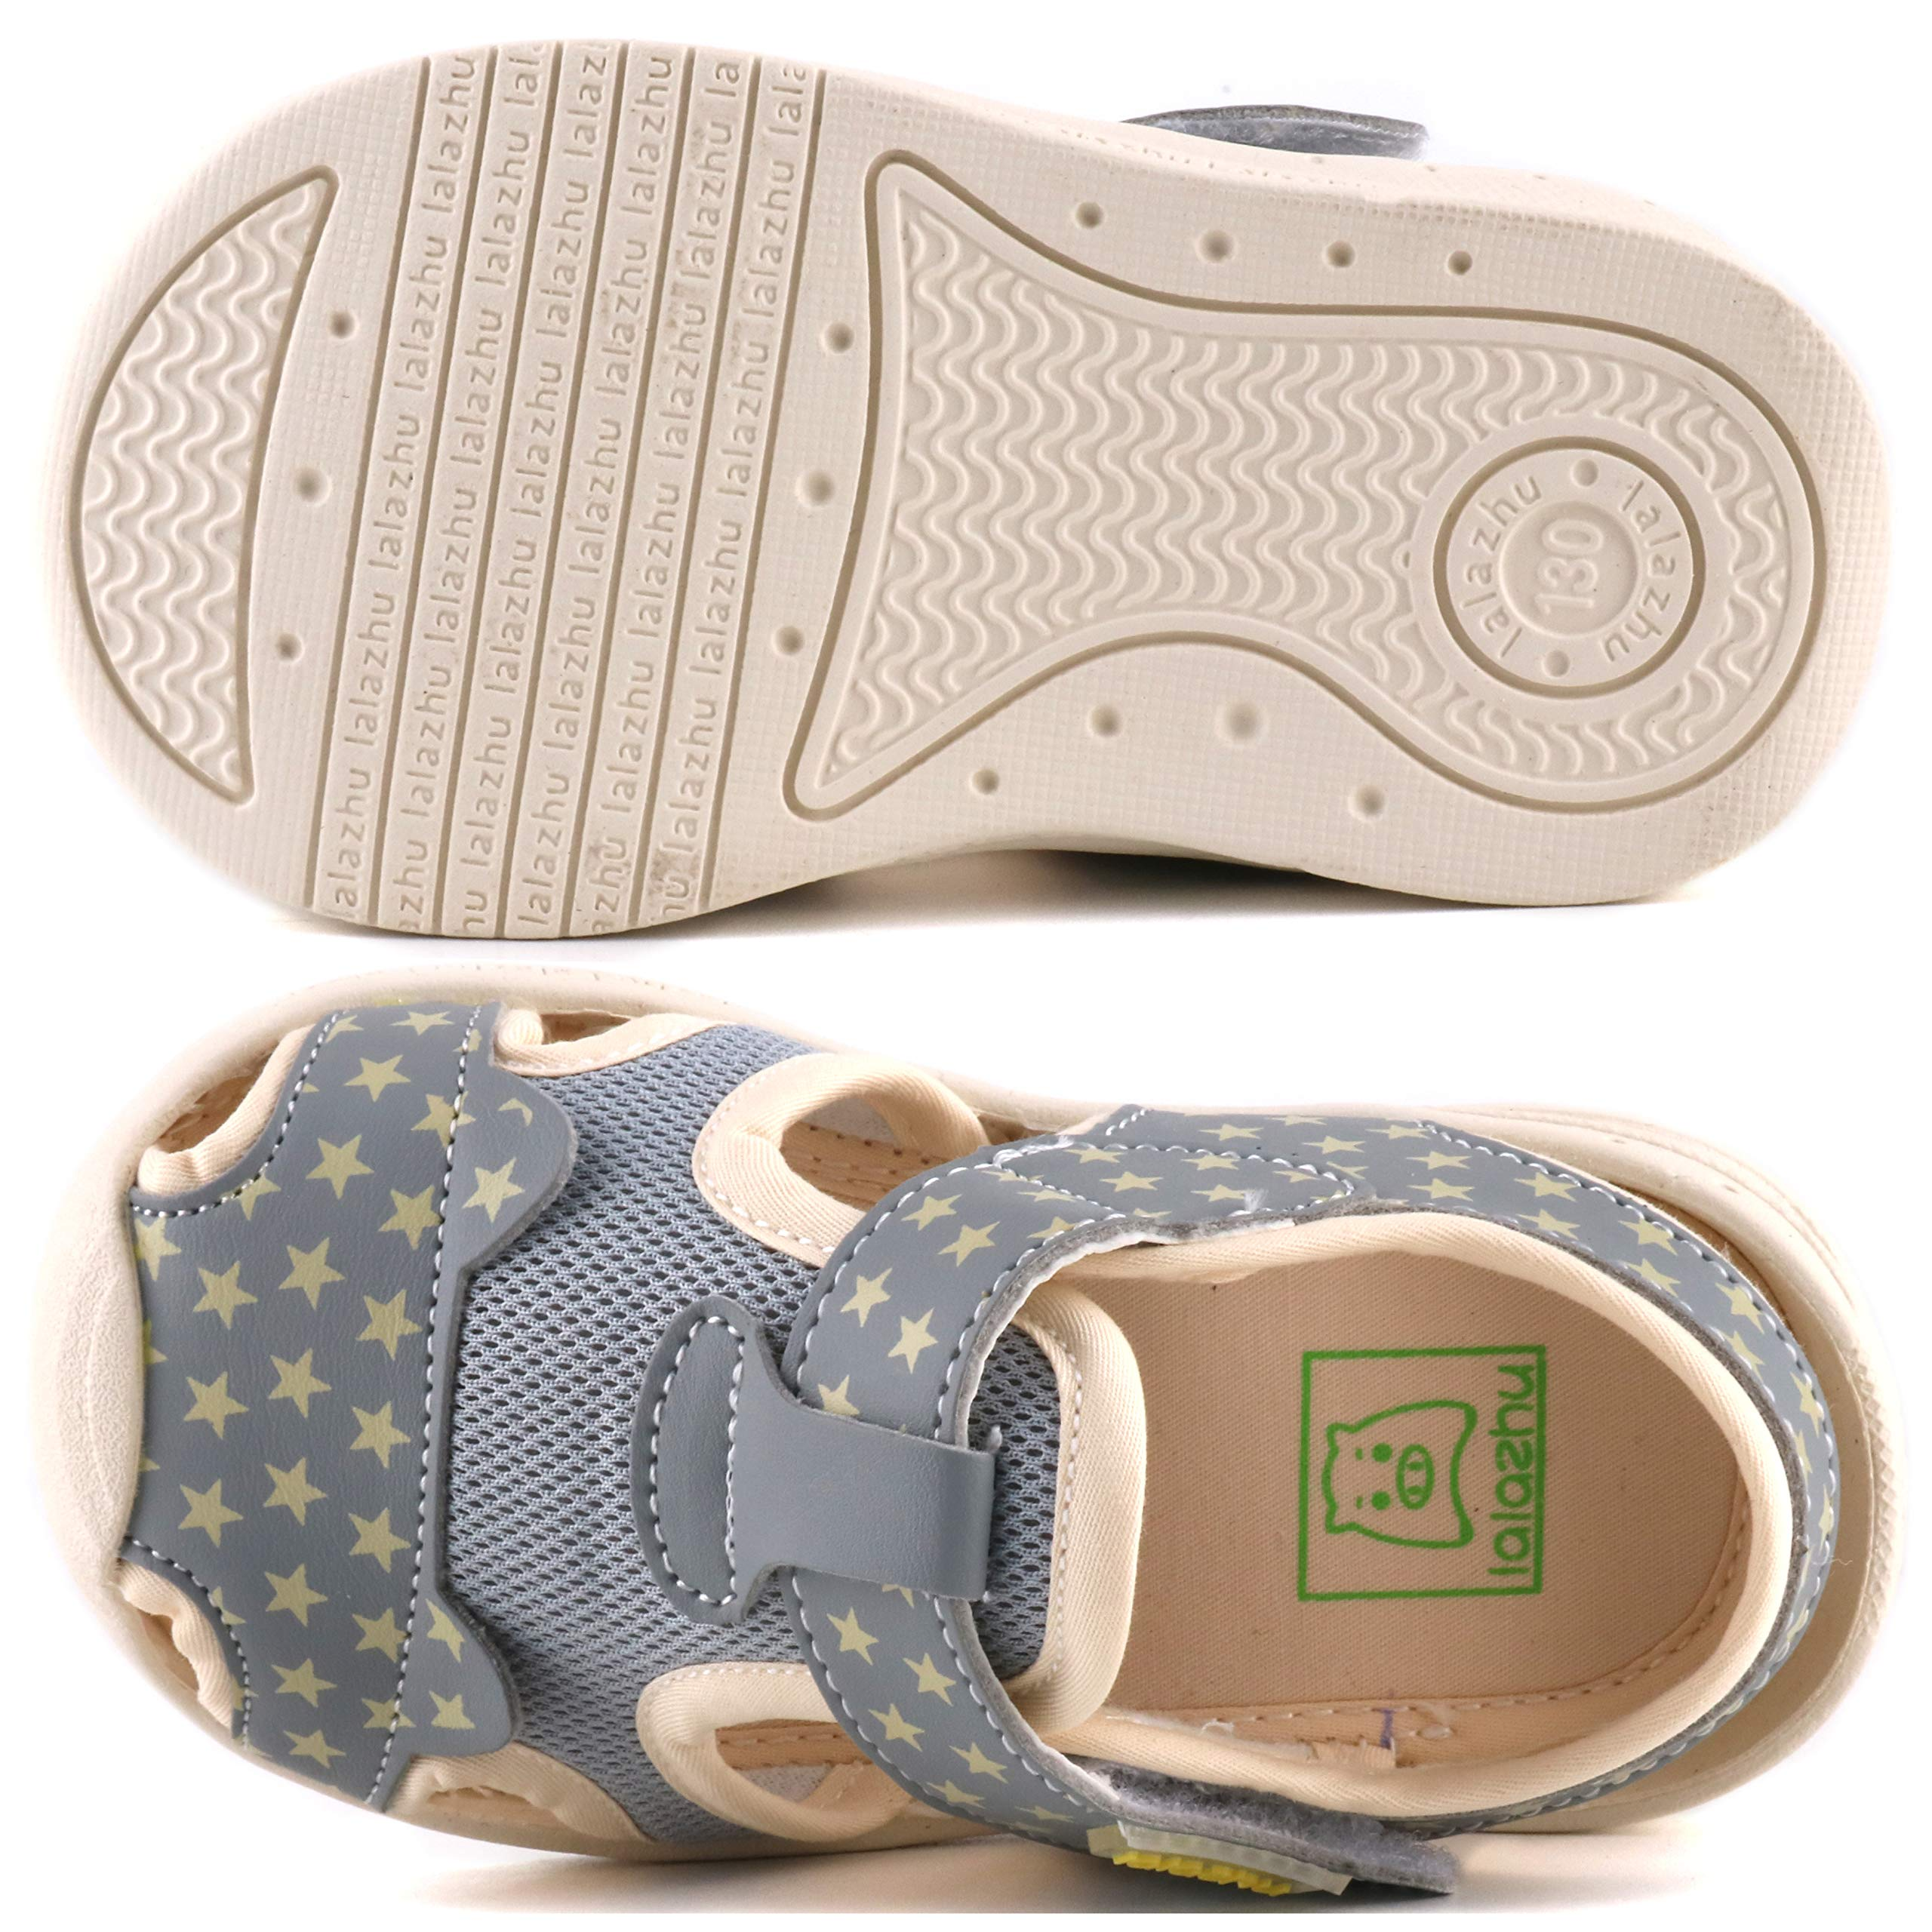 Moceen Kids Soft Microfiber Leather Sandals Light-Up Toddler Boys/Girls Closed Toe Pre School Shoes,Grey,8102 115 by Moceen (Image #3)